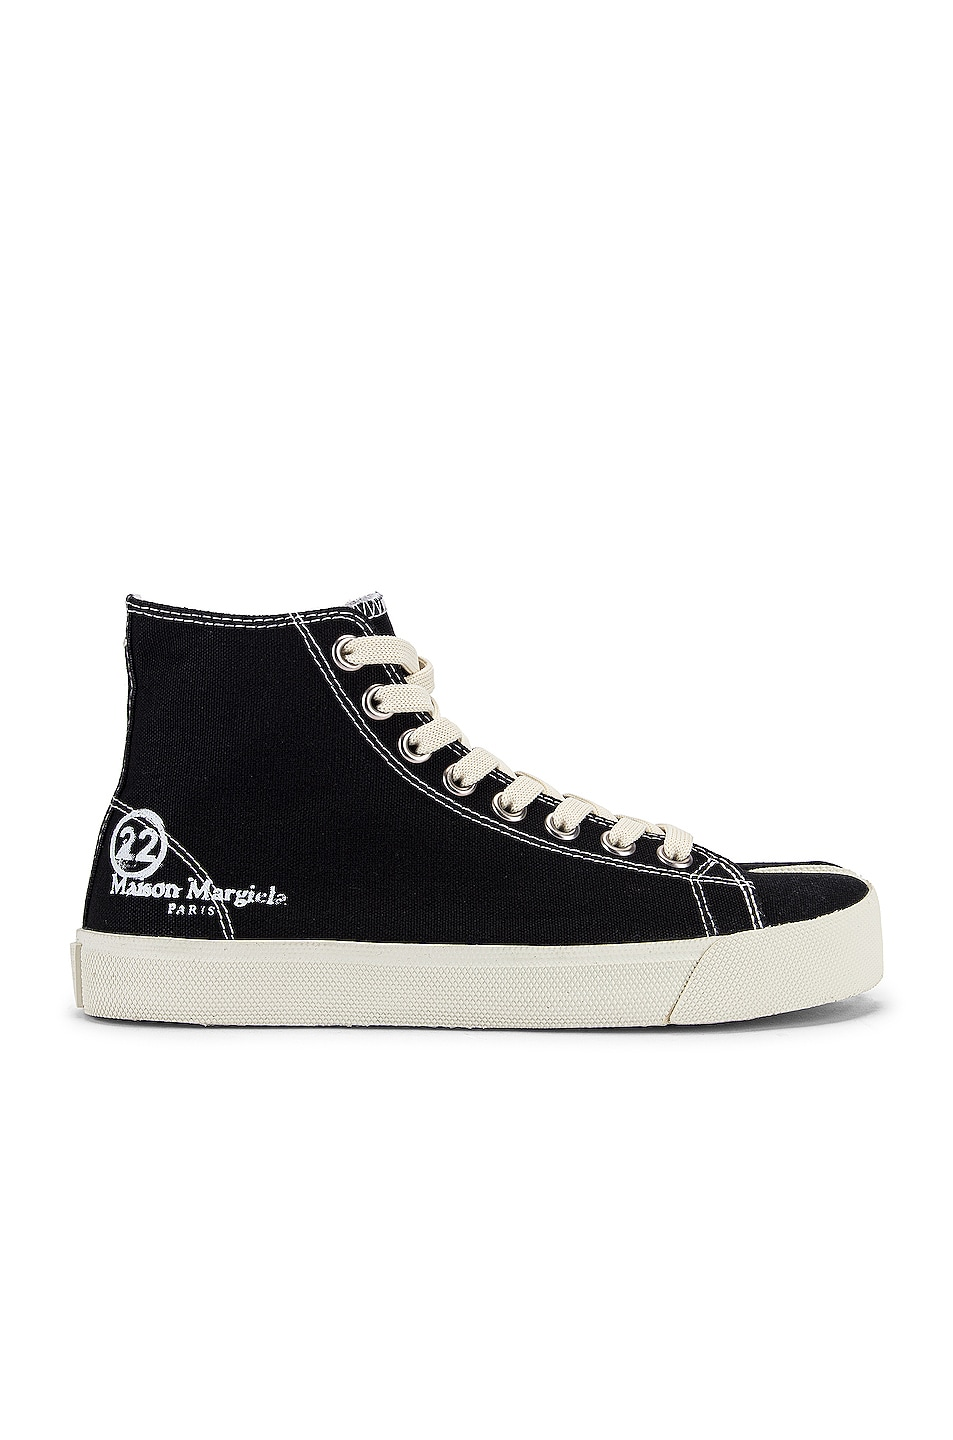 Image 2 of Maison Margiela Tabi High Top Canvas Sneakers in Black